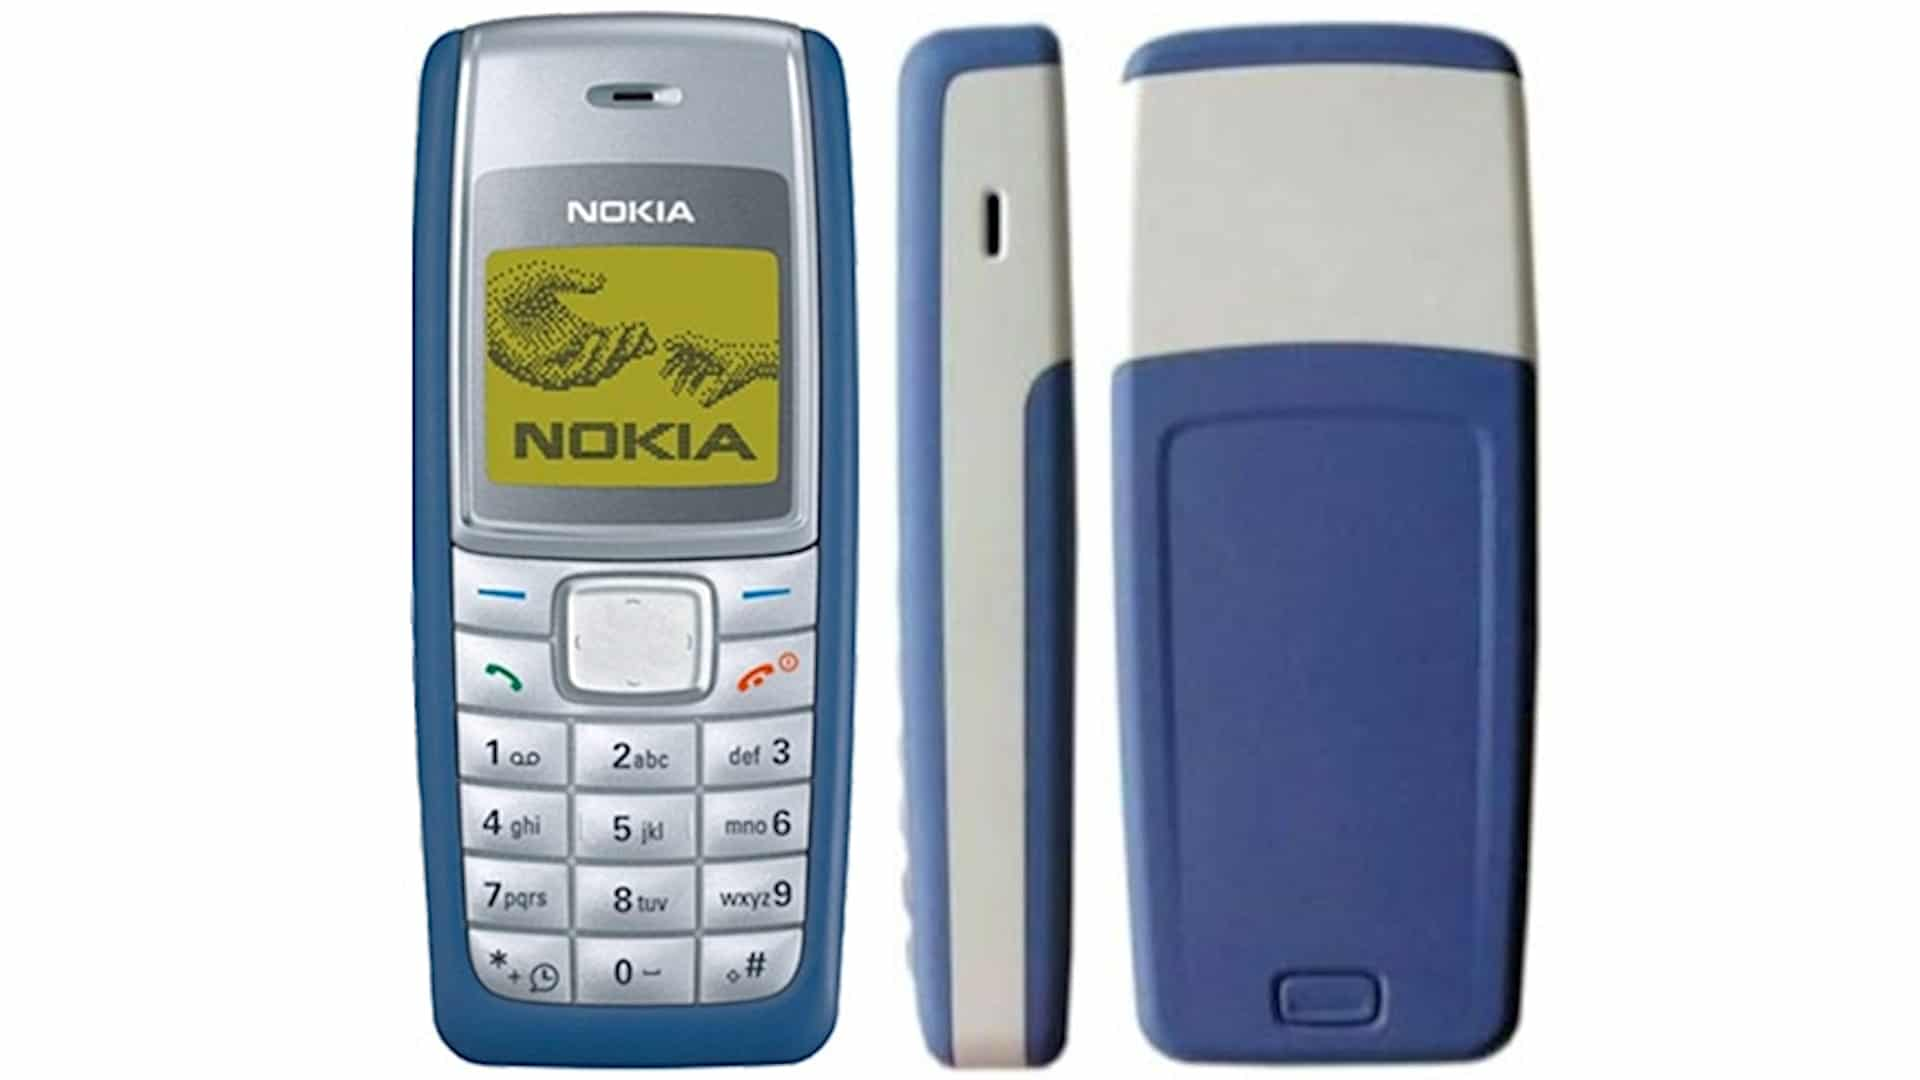 Top 20 Most Sold Mobile Phones Of All Times [List]